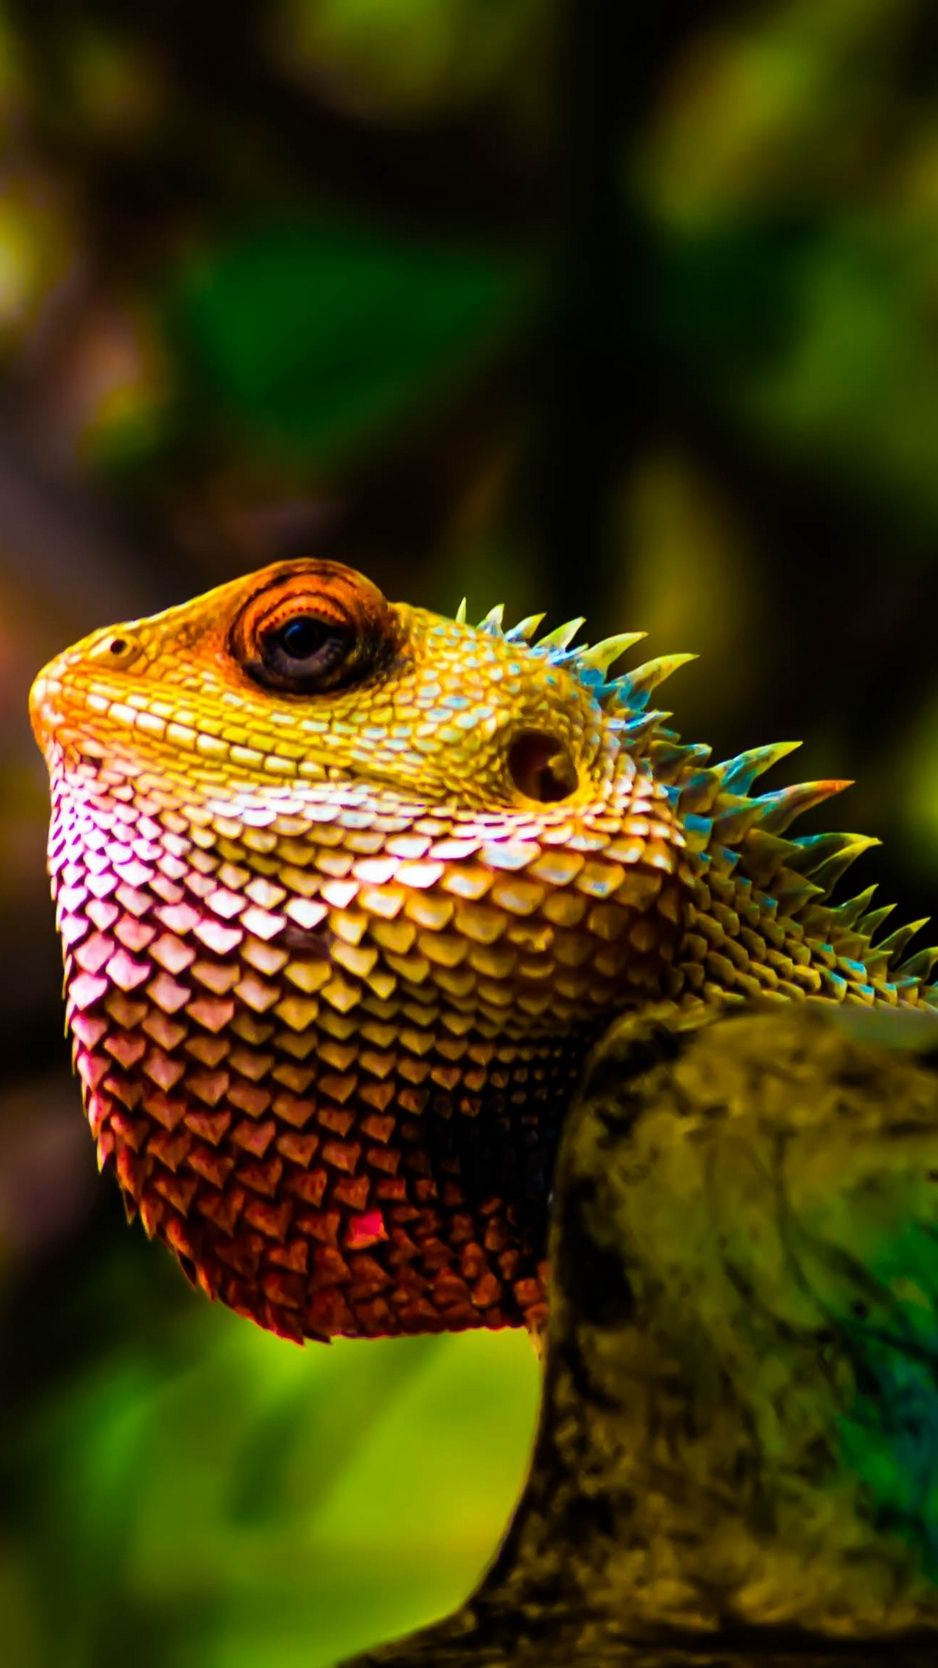 938x1668 Download wallpaper 938x1668 iguana, reptile, scales, color iphone 8 ...